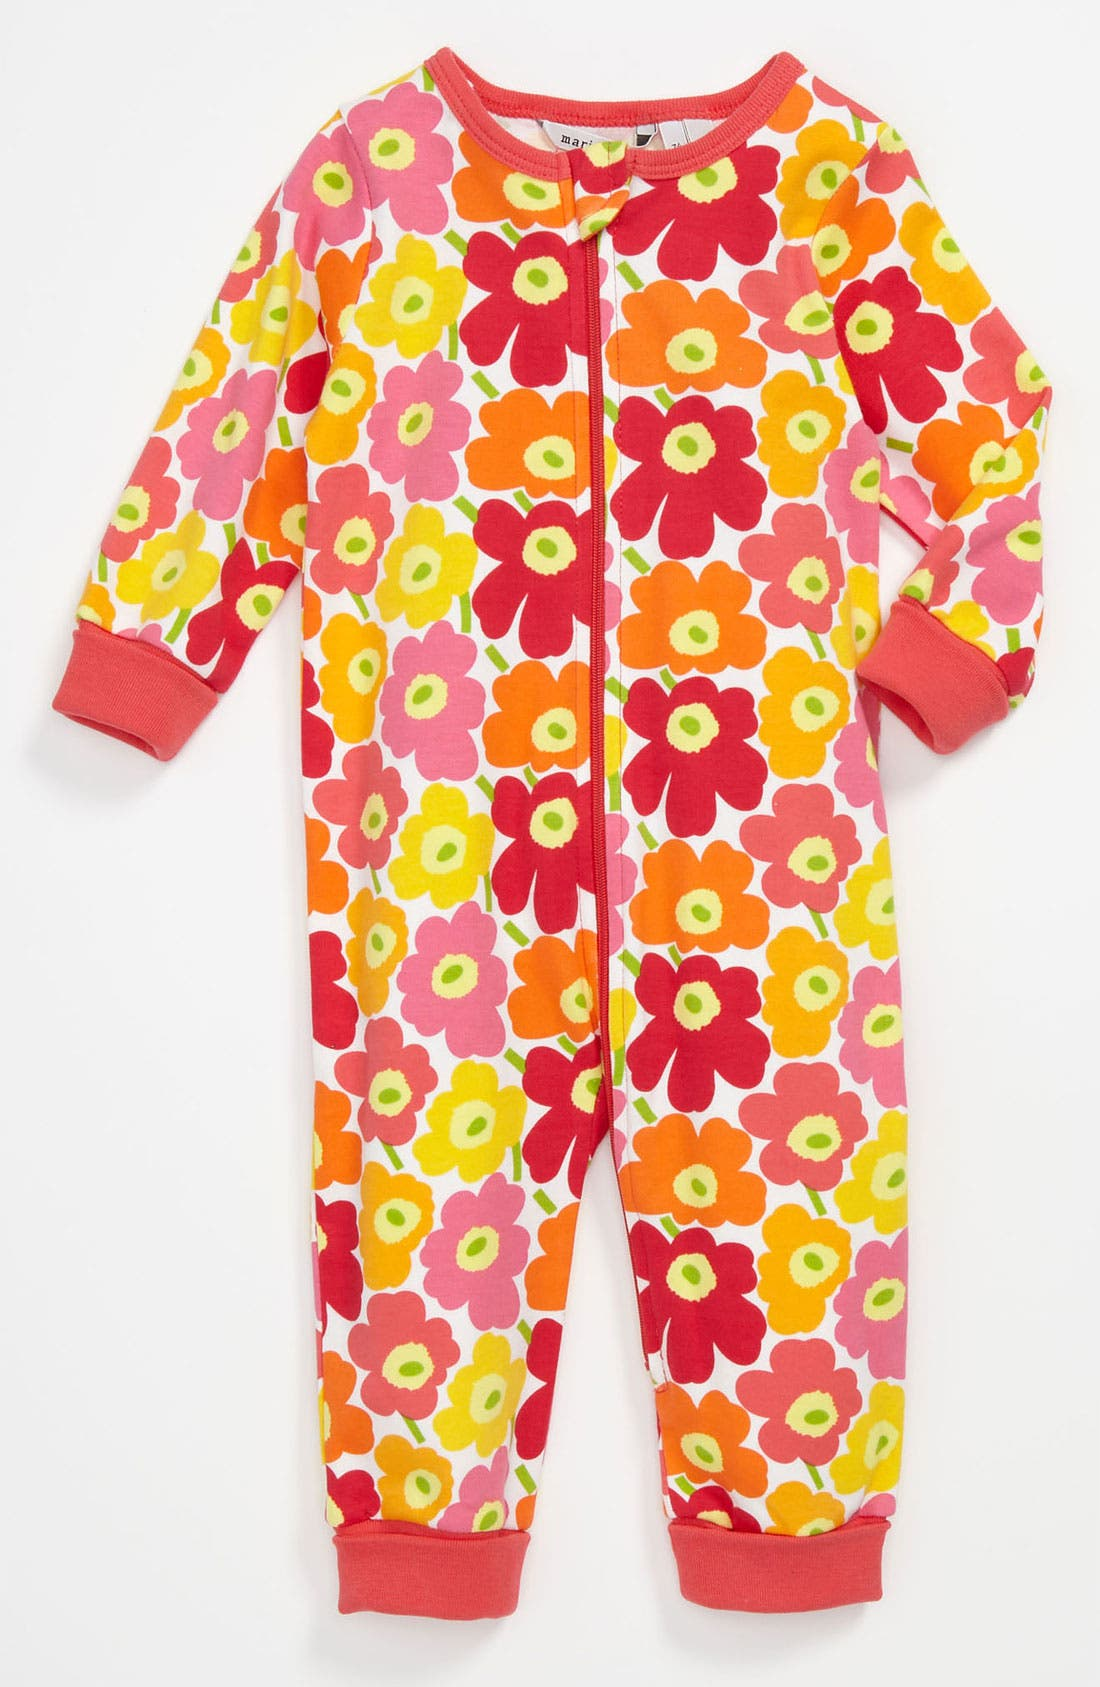 Alternate Image 1 Selected - Marimekko 'Unikko' Print Coveralls (Infant)